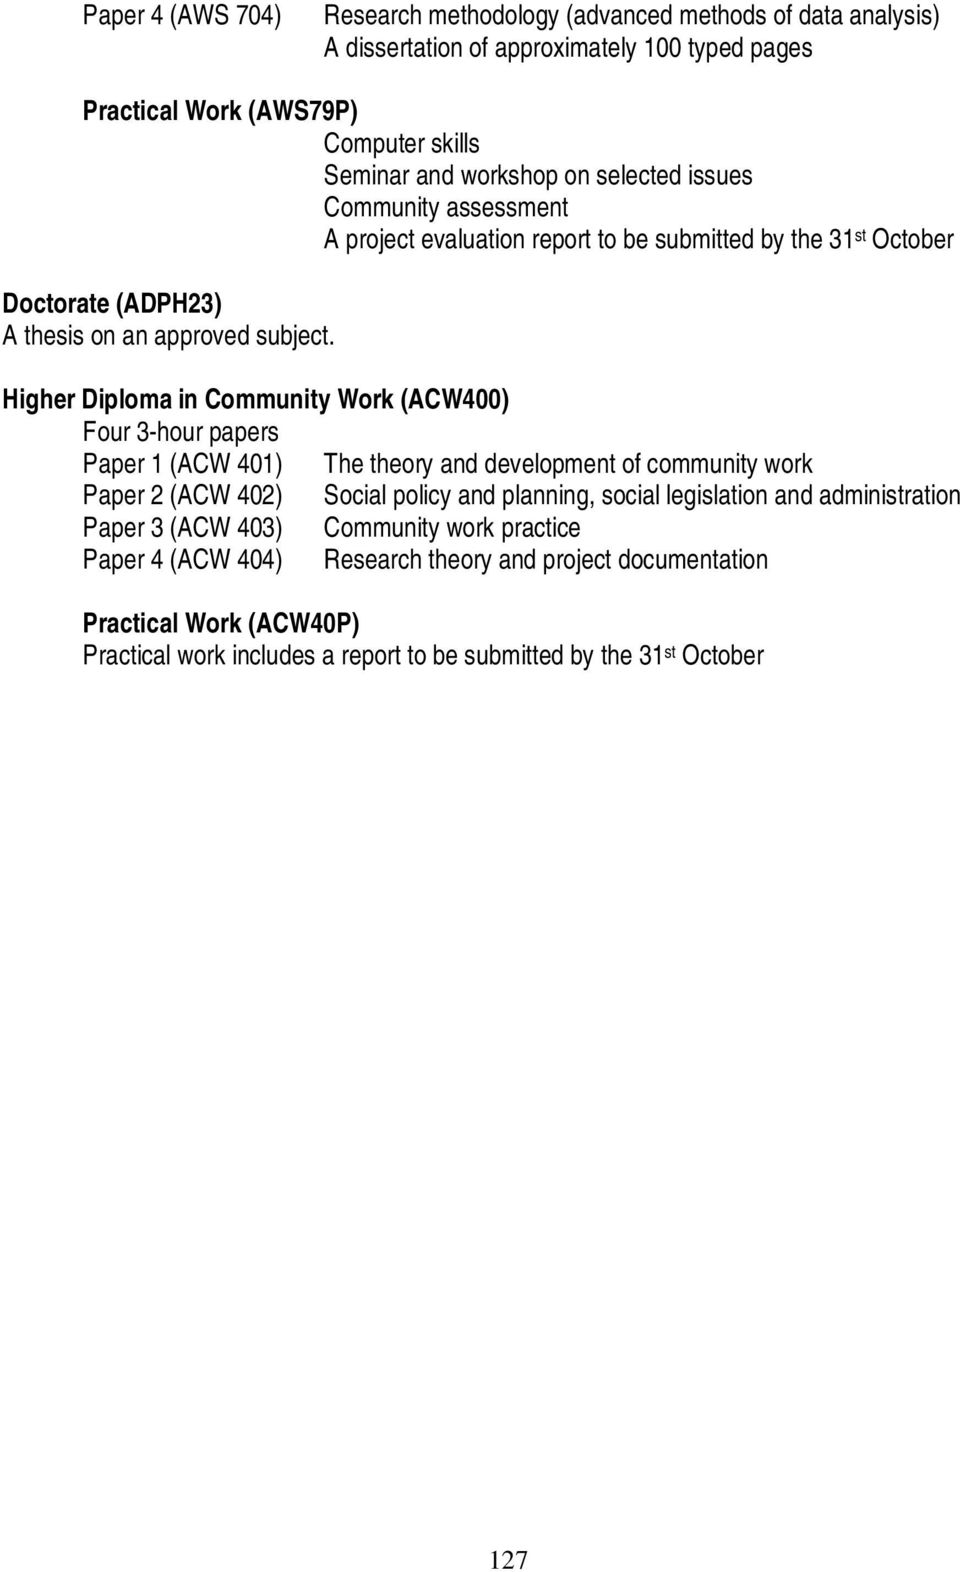 Higher Diploma in Community Work (ACW400) Four 3-hour papers Paper 1 (ACW 401) The theory and development of community work Paper 2 (ACW 402) Social policy and planning, social